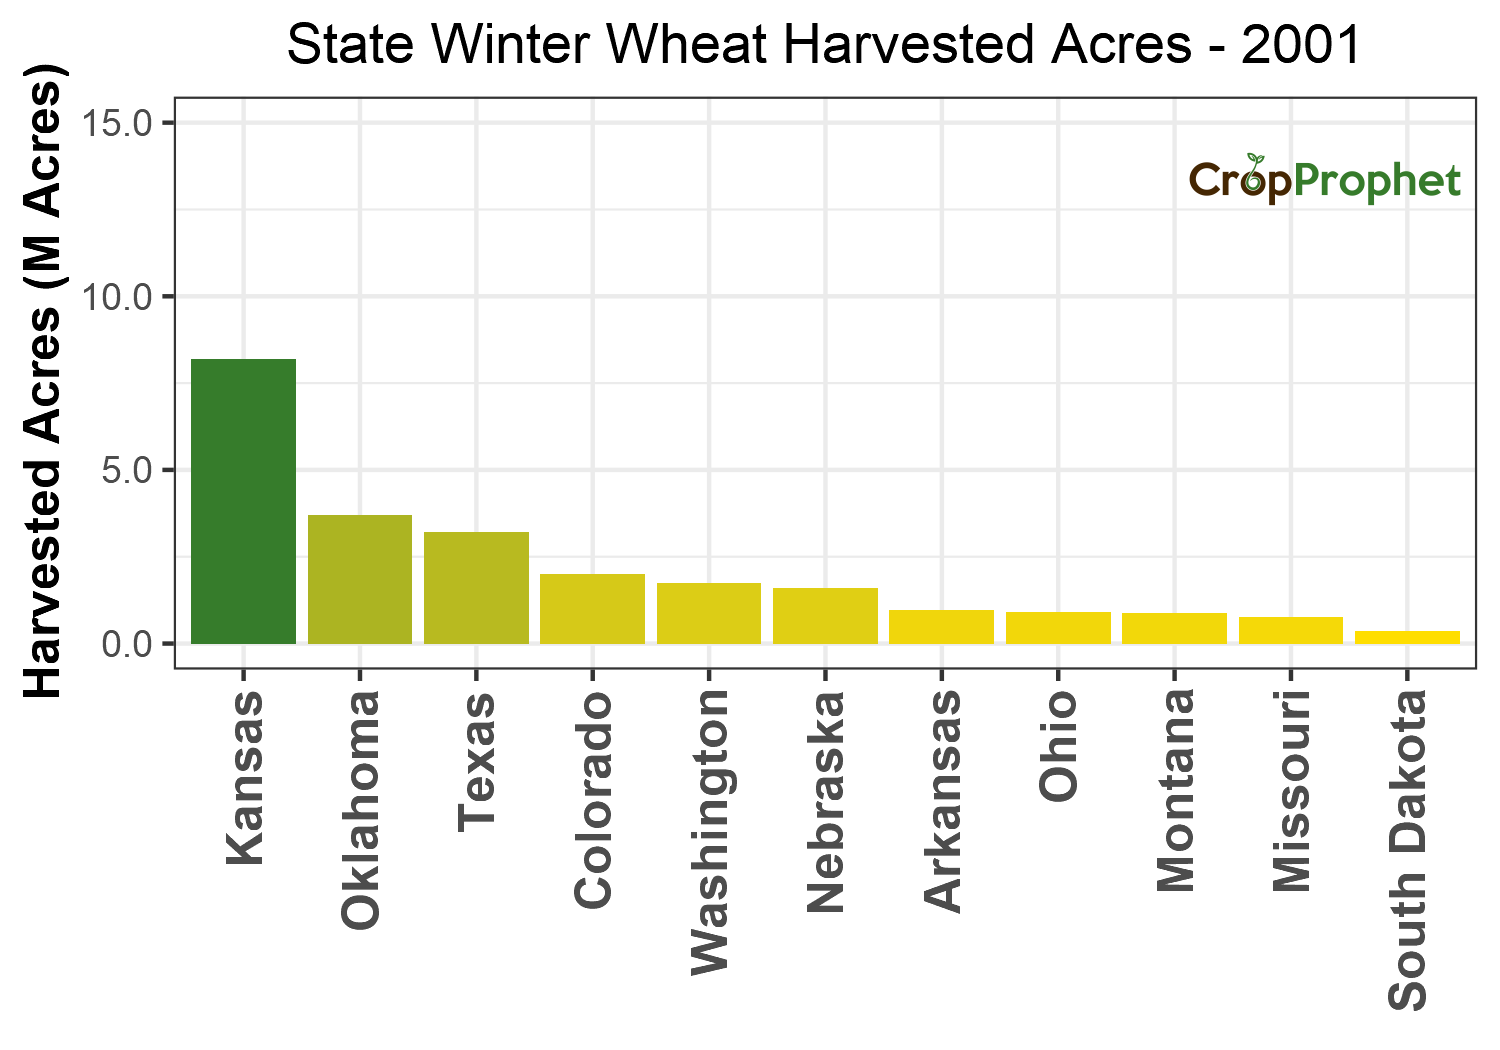 Winter wheat Harvested Acres by State - 2001 Rankings